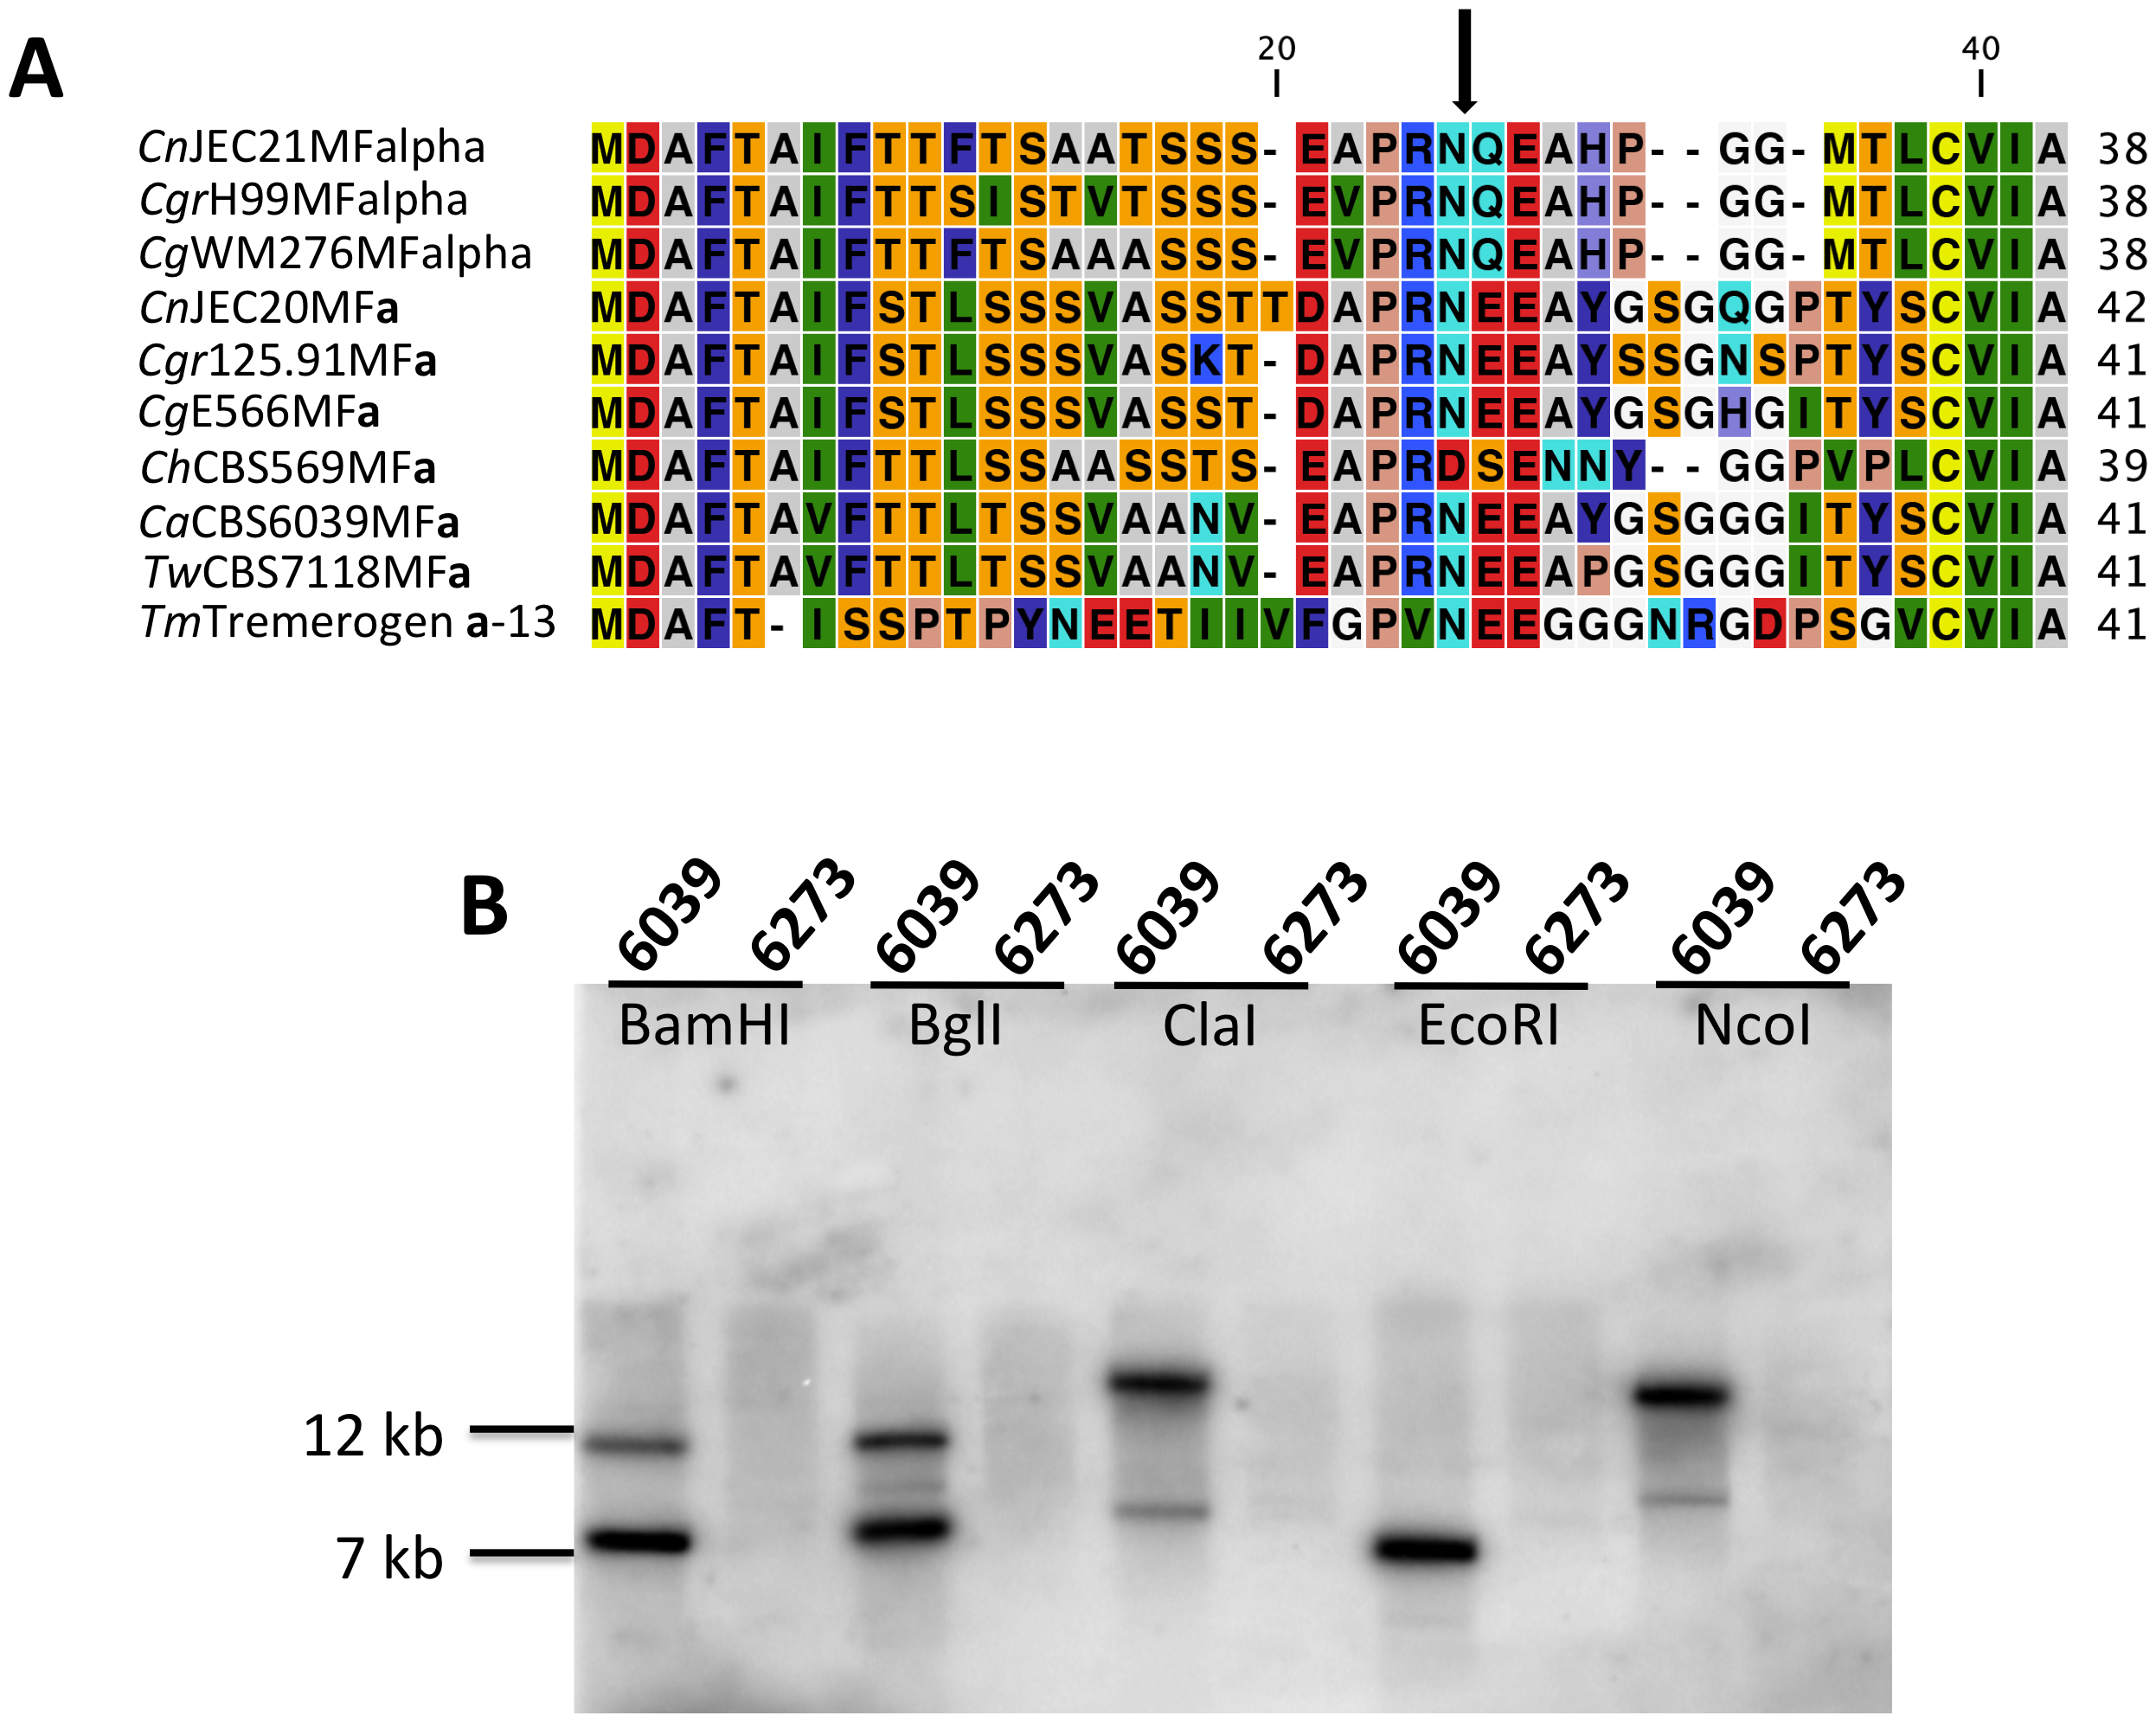 Analysis of the pheromone/receptor genes in <i>C. amylolentus</i>.